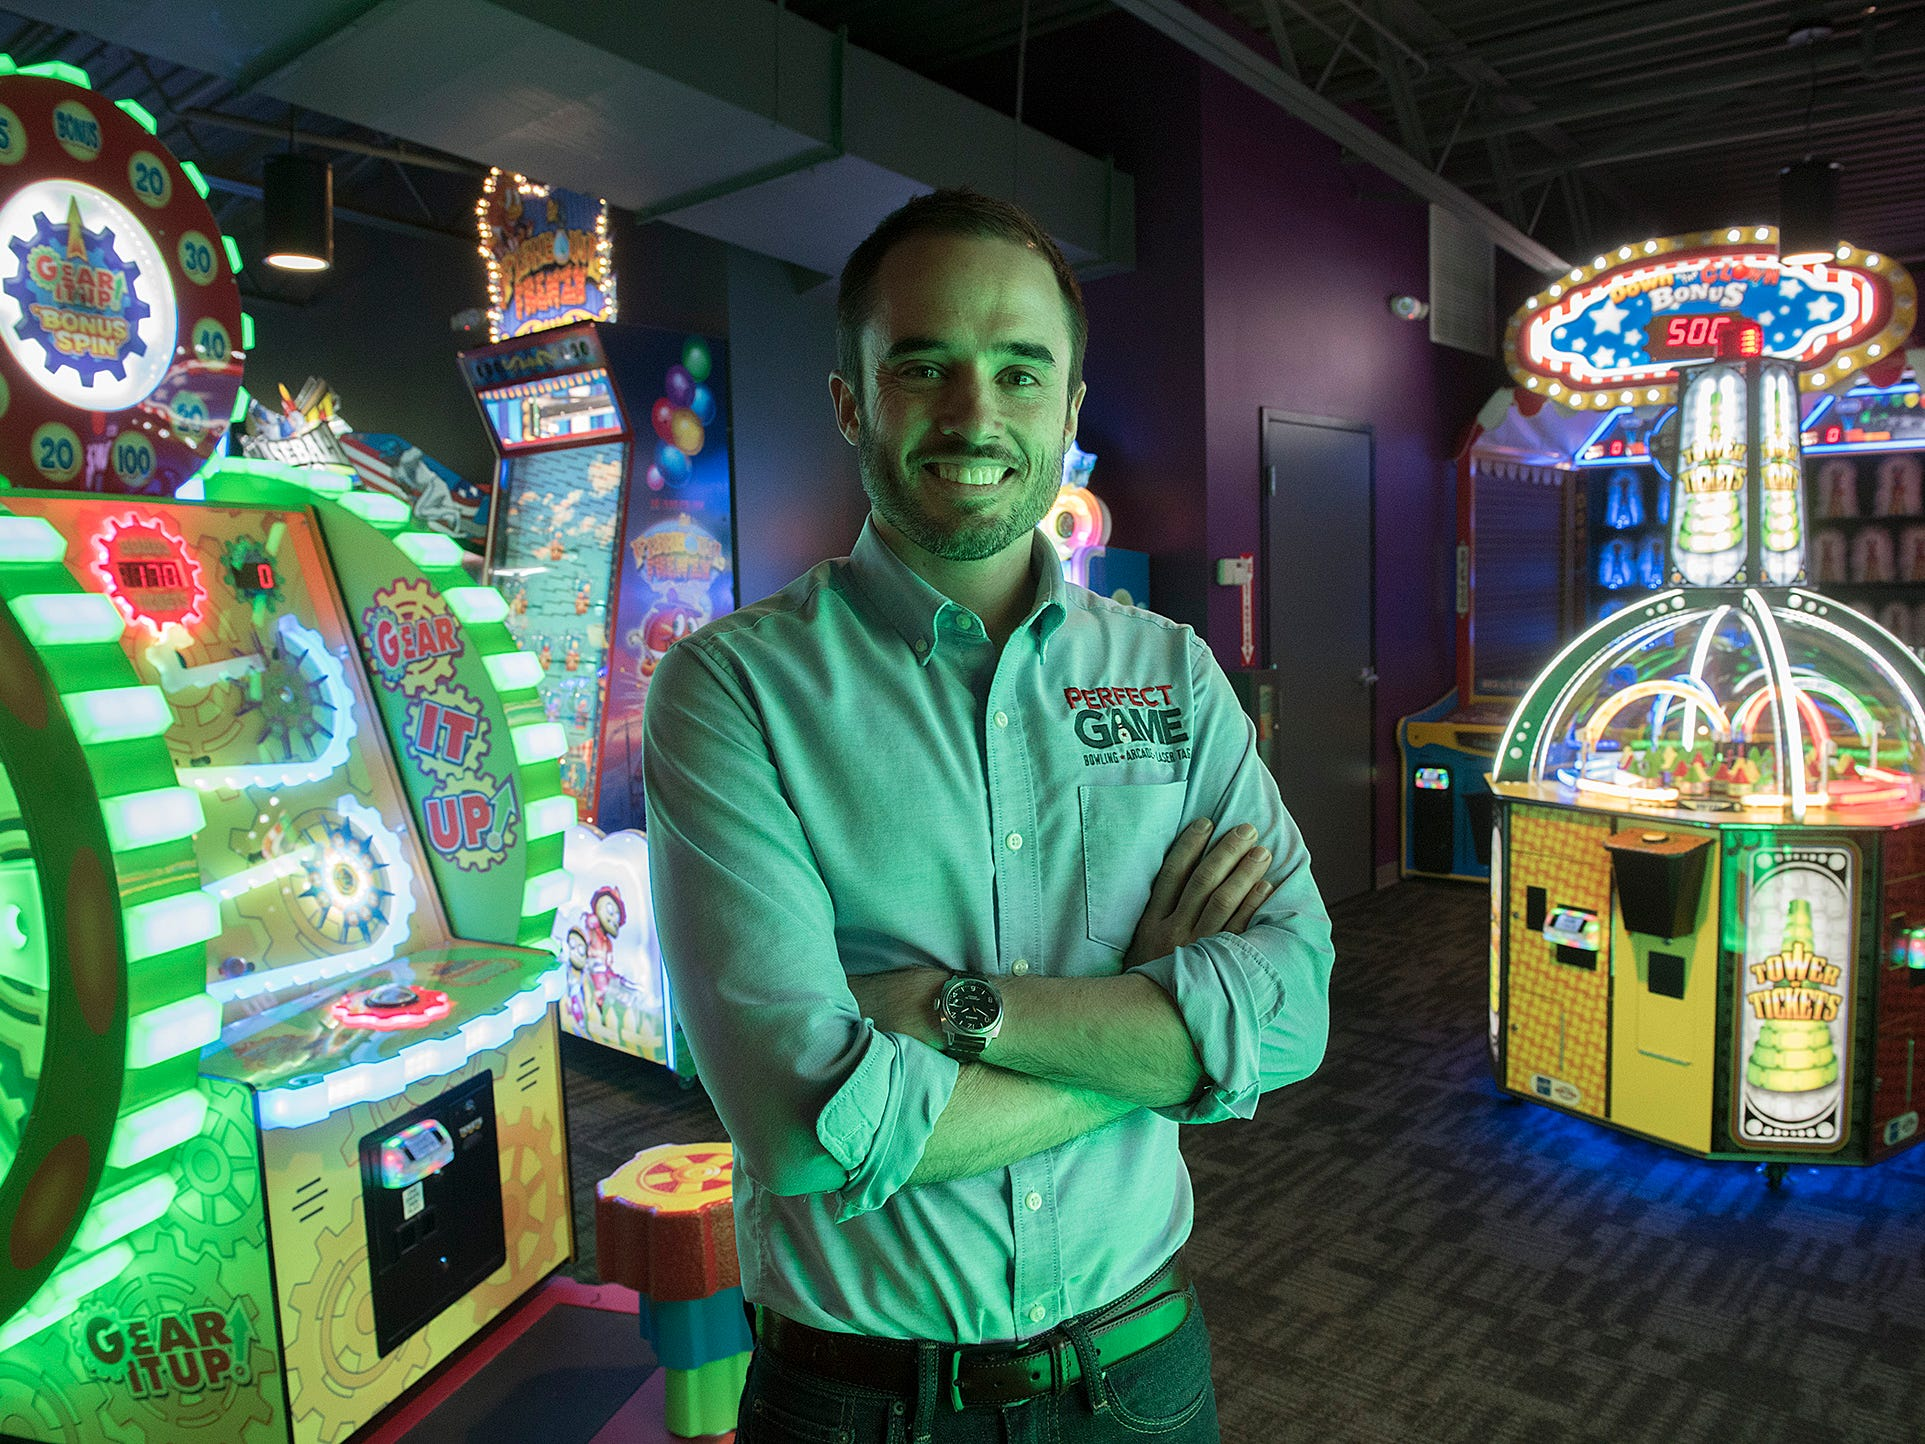 Michael Shearer is a big fan of the arcade games.